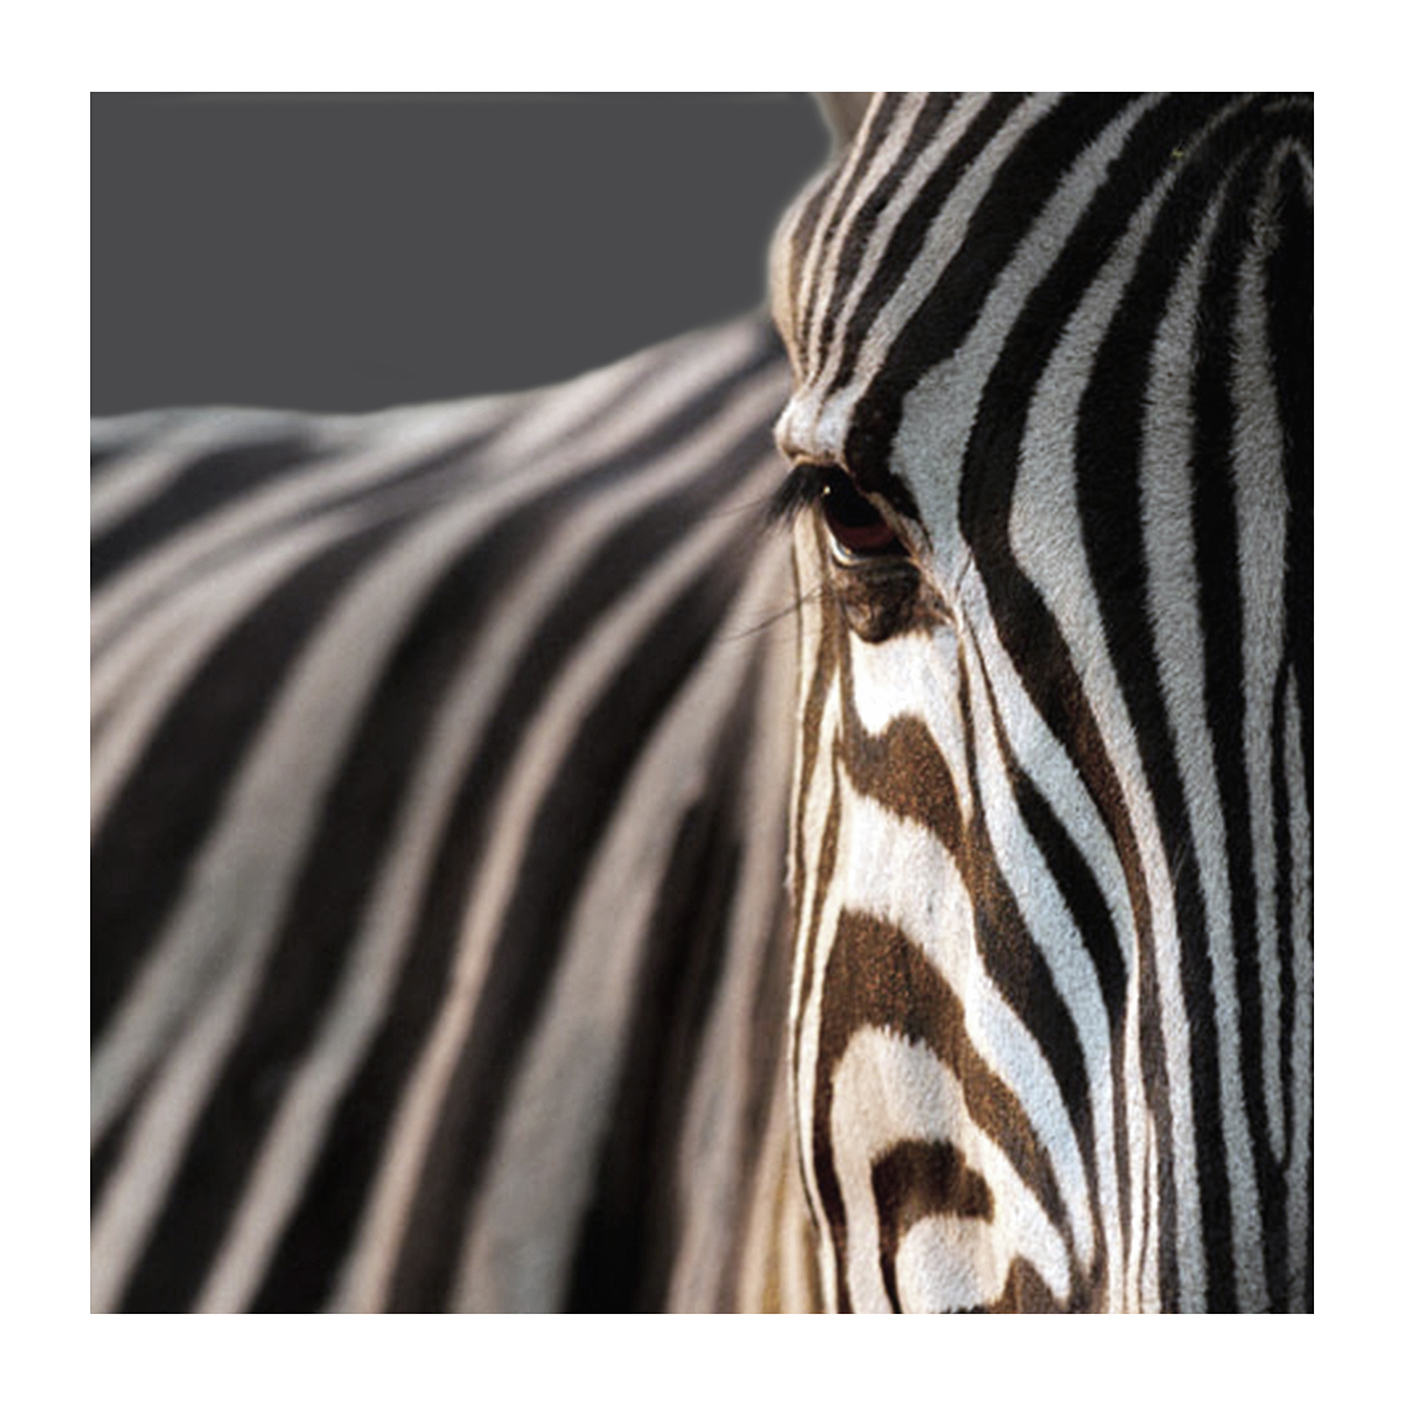 Eye of the Zebra, by Edie Swift. All rights reserved.